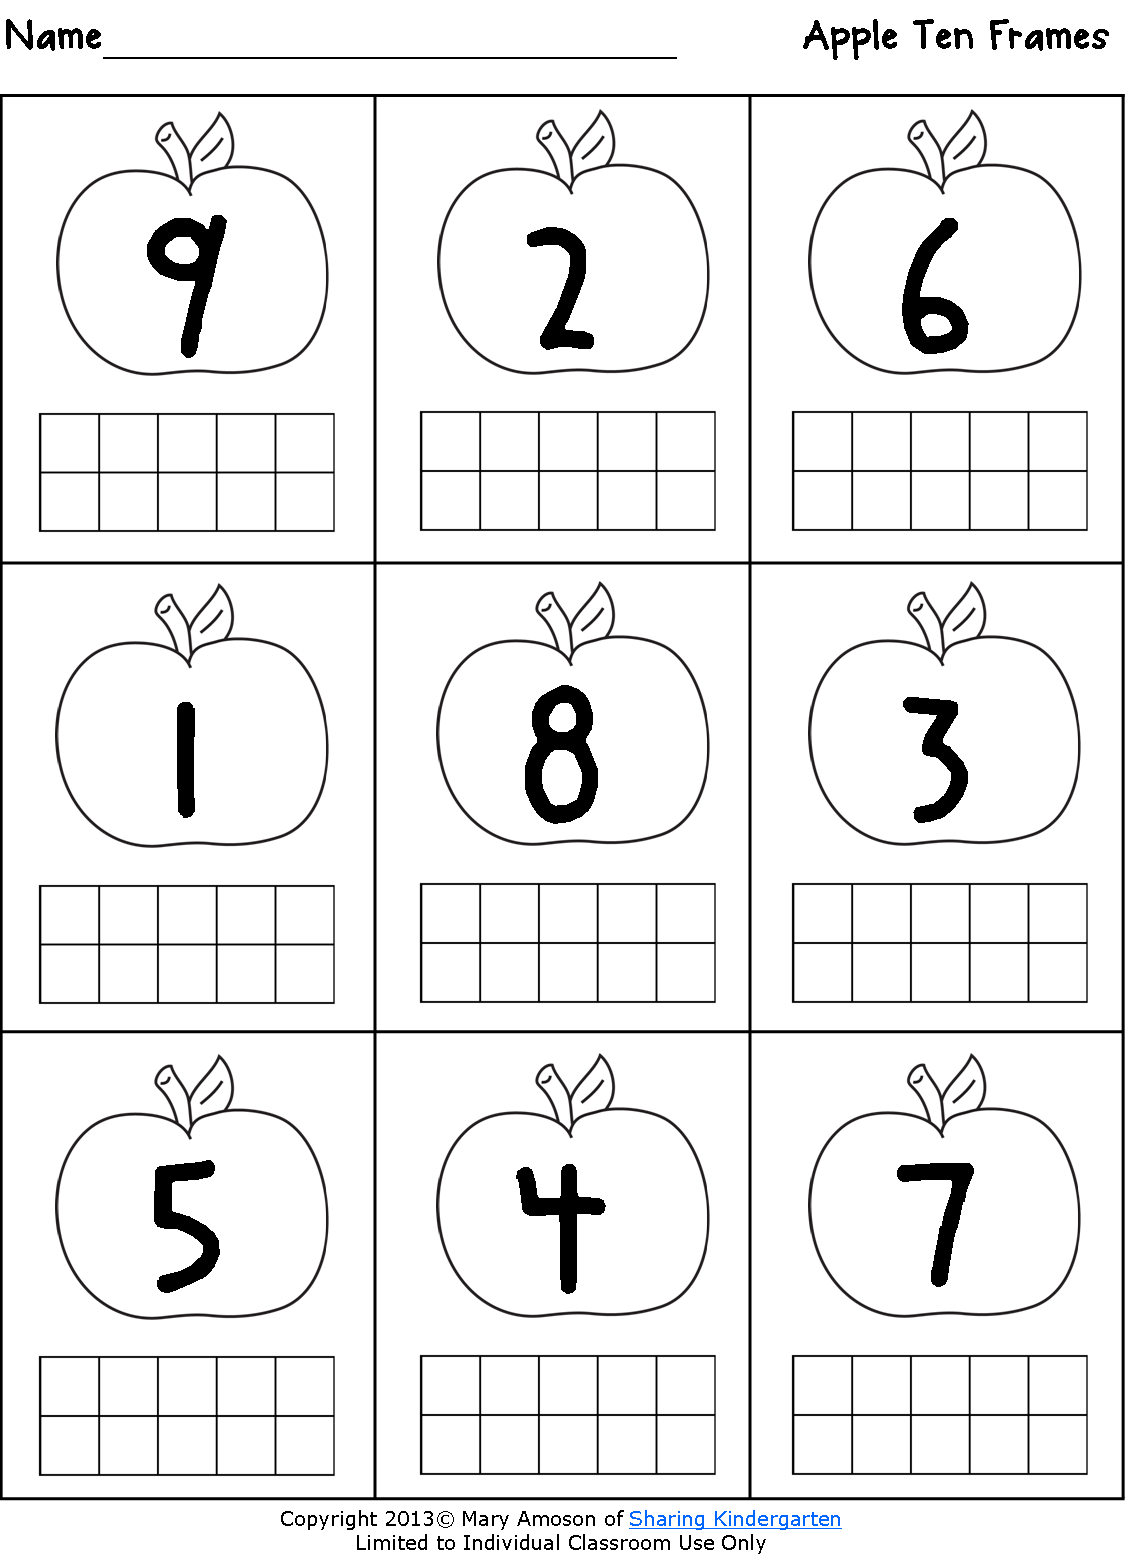 Pumpkin pie clipart connect the dots graphic A is for Apple | Pinterest | Pre-school, Apples and Maths graphic